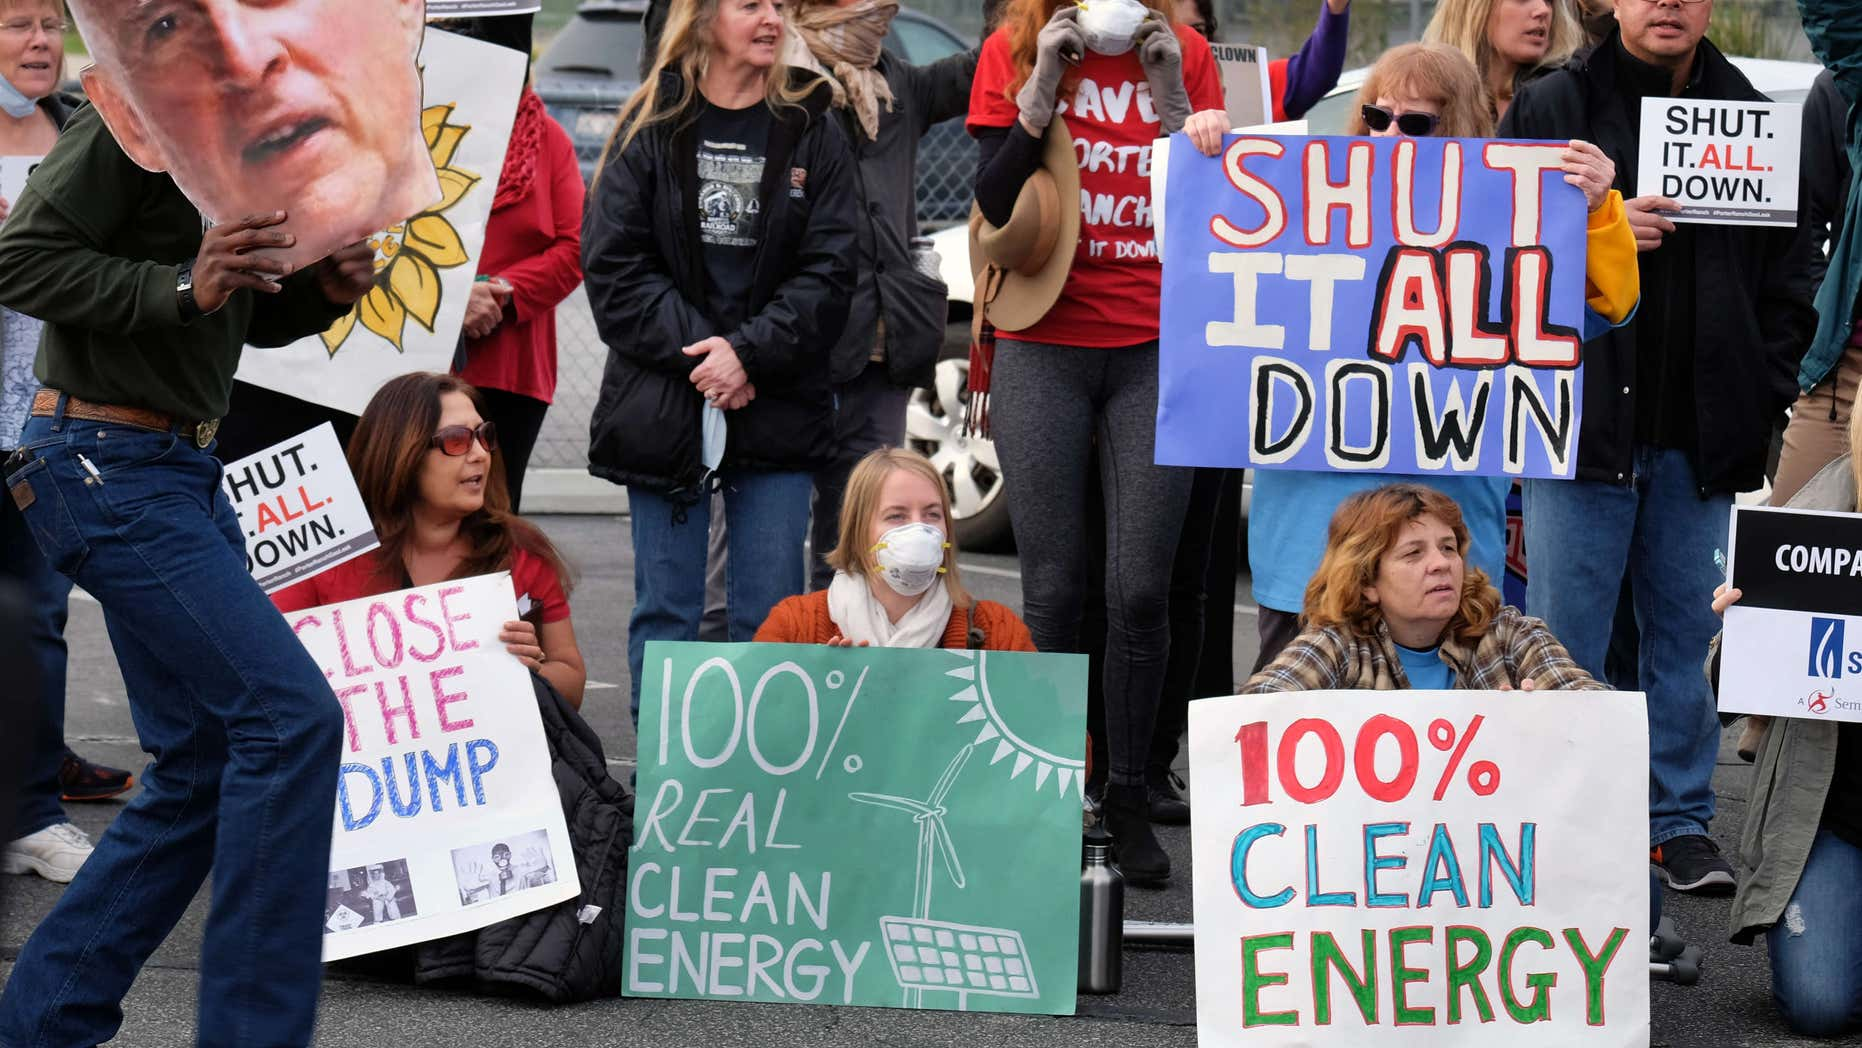 Jan. 16, 2016: Protestors carry a photo of California's governor Jerry Brown and demand a shut down of the Southern California Gas Company's Aliso Canyon Storage Facility near Porter Ranch in Los Angeles.